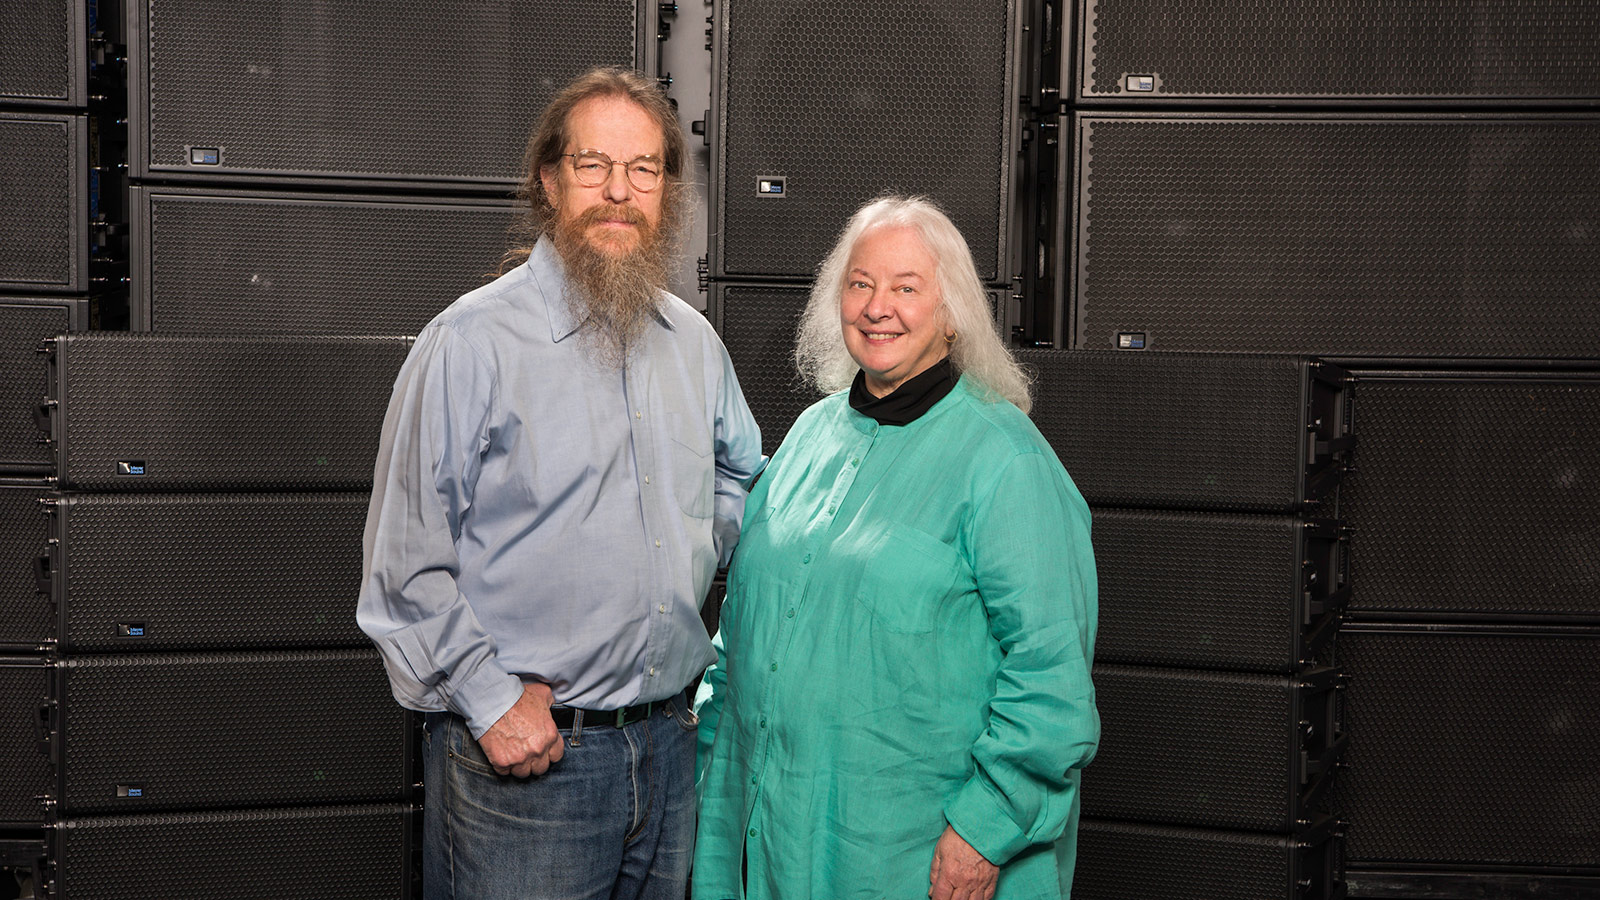 John and Helen recreate the historic Wall of Sound to celebrate the 50th anniversary of the Summer of Love